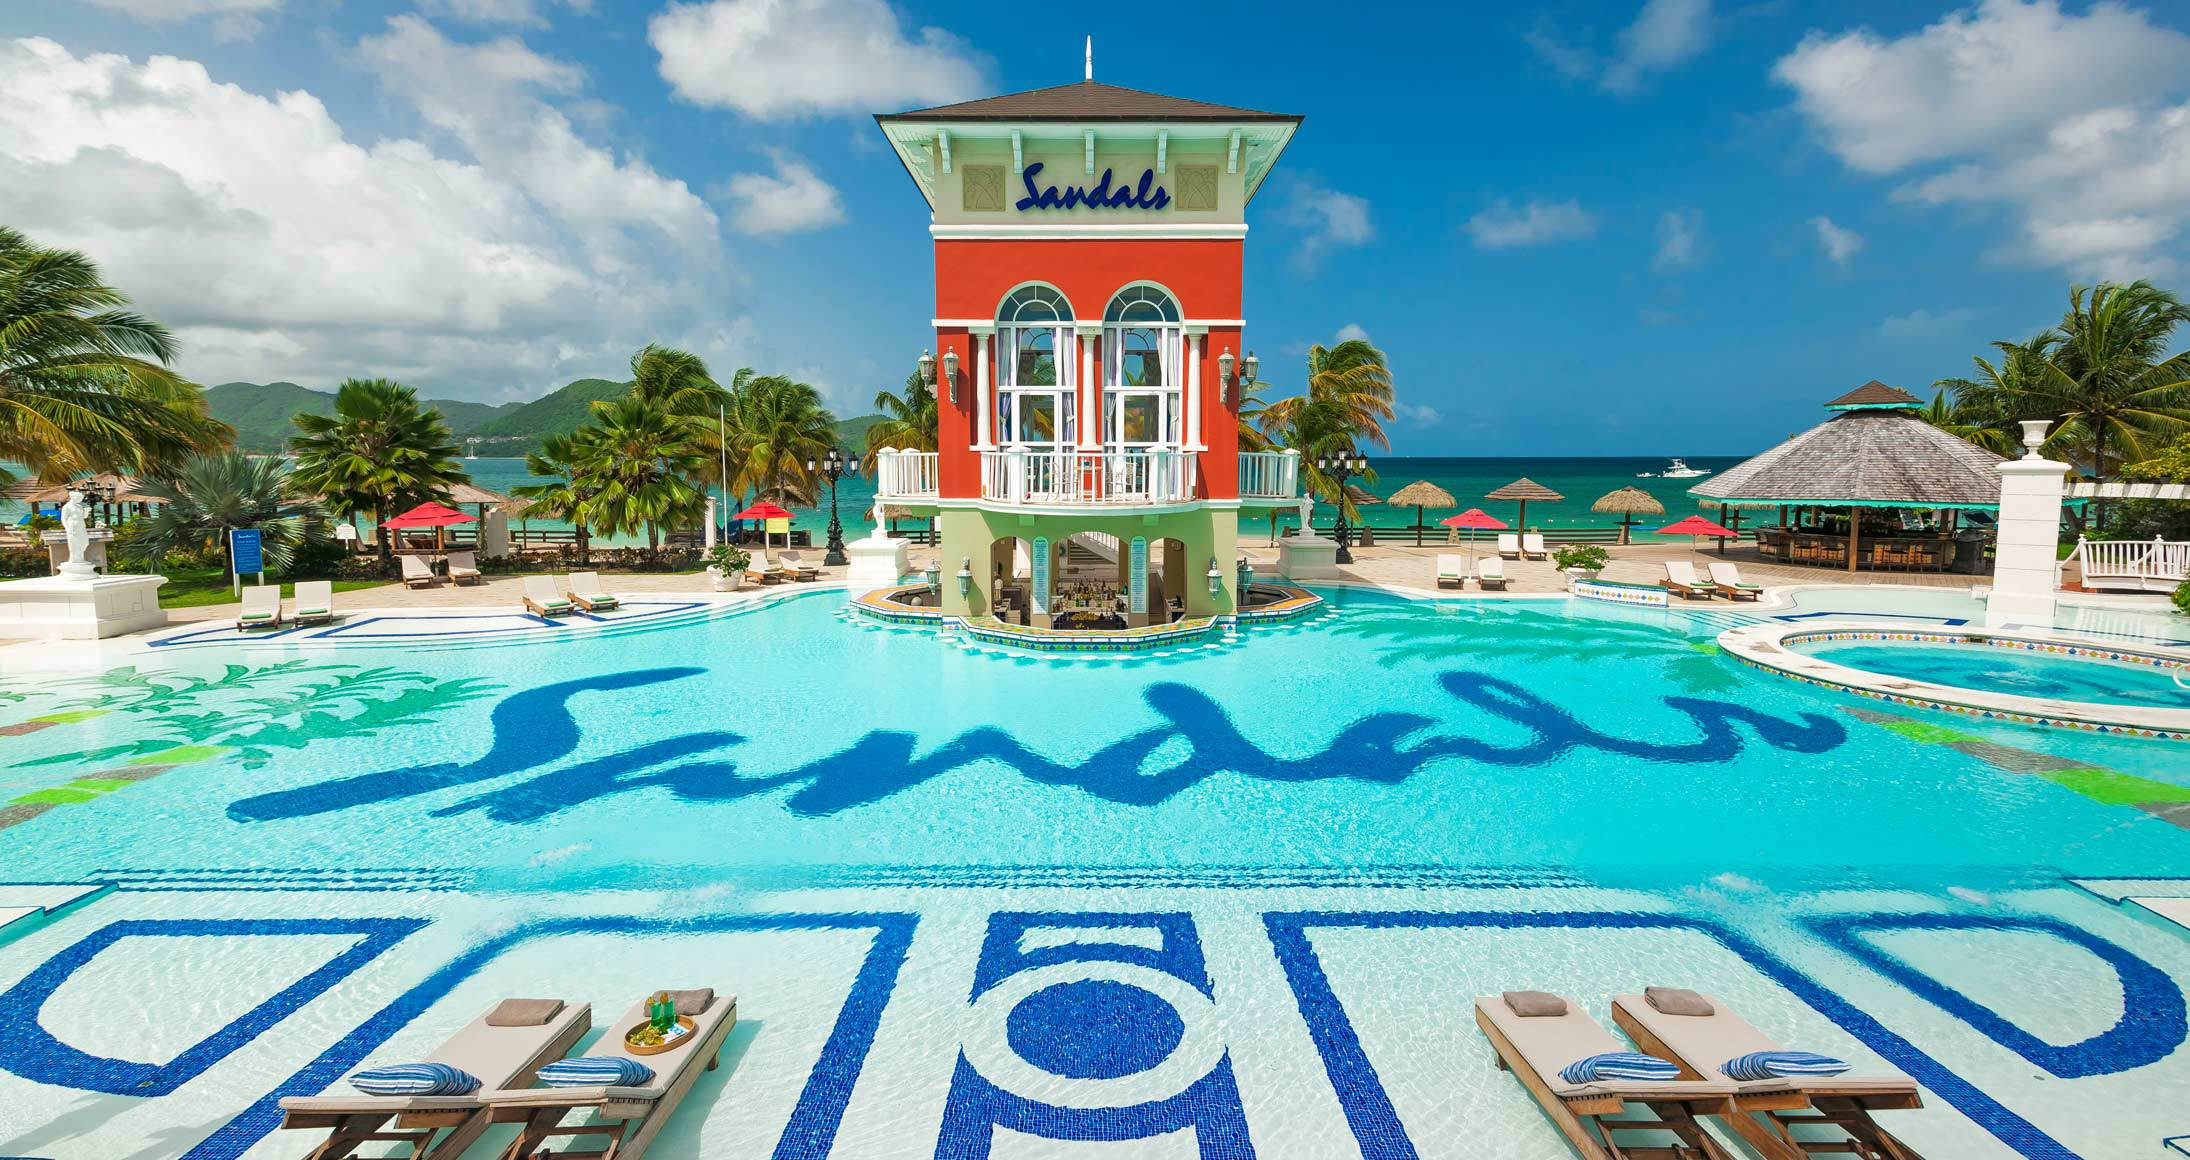 1116afbe0 Sandals Grande St. Lucian - All-Inclusive Luxury Resort in St. Lucia